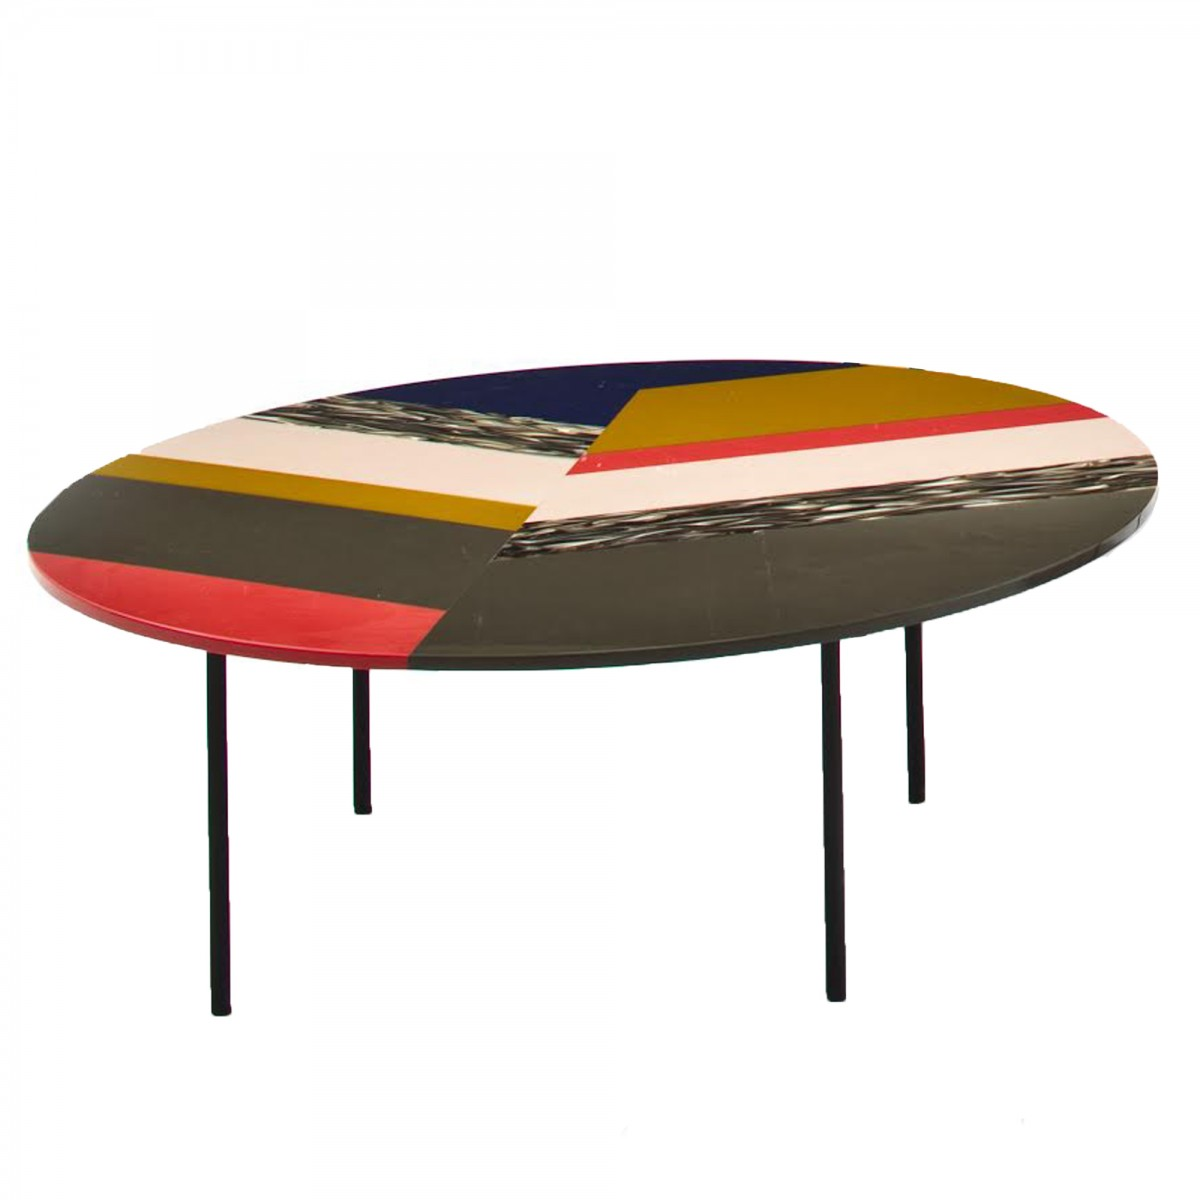 Table basse ronde m a s s a s fishbone moroso for 2 table basse ronde